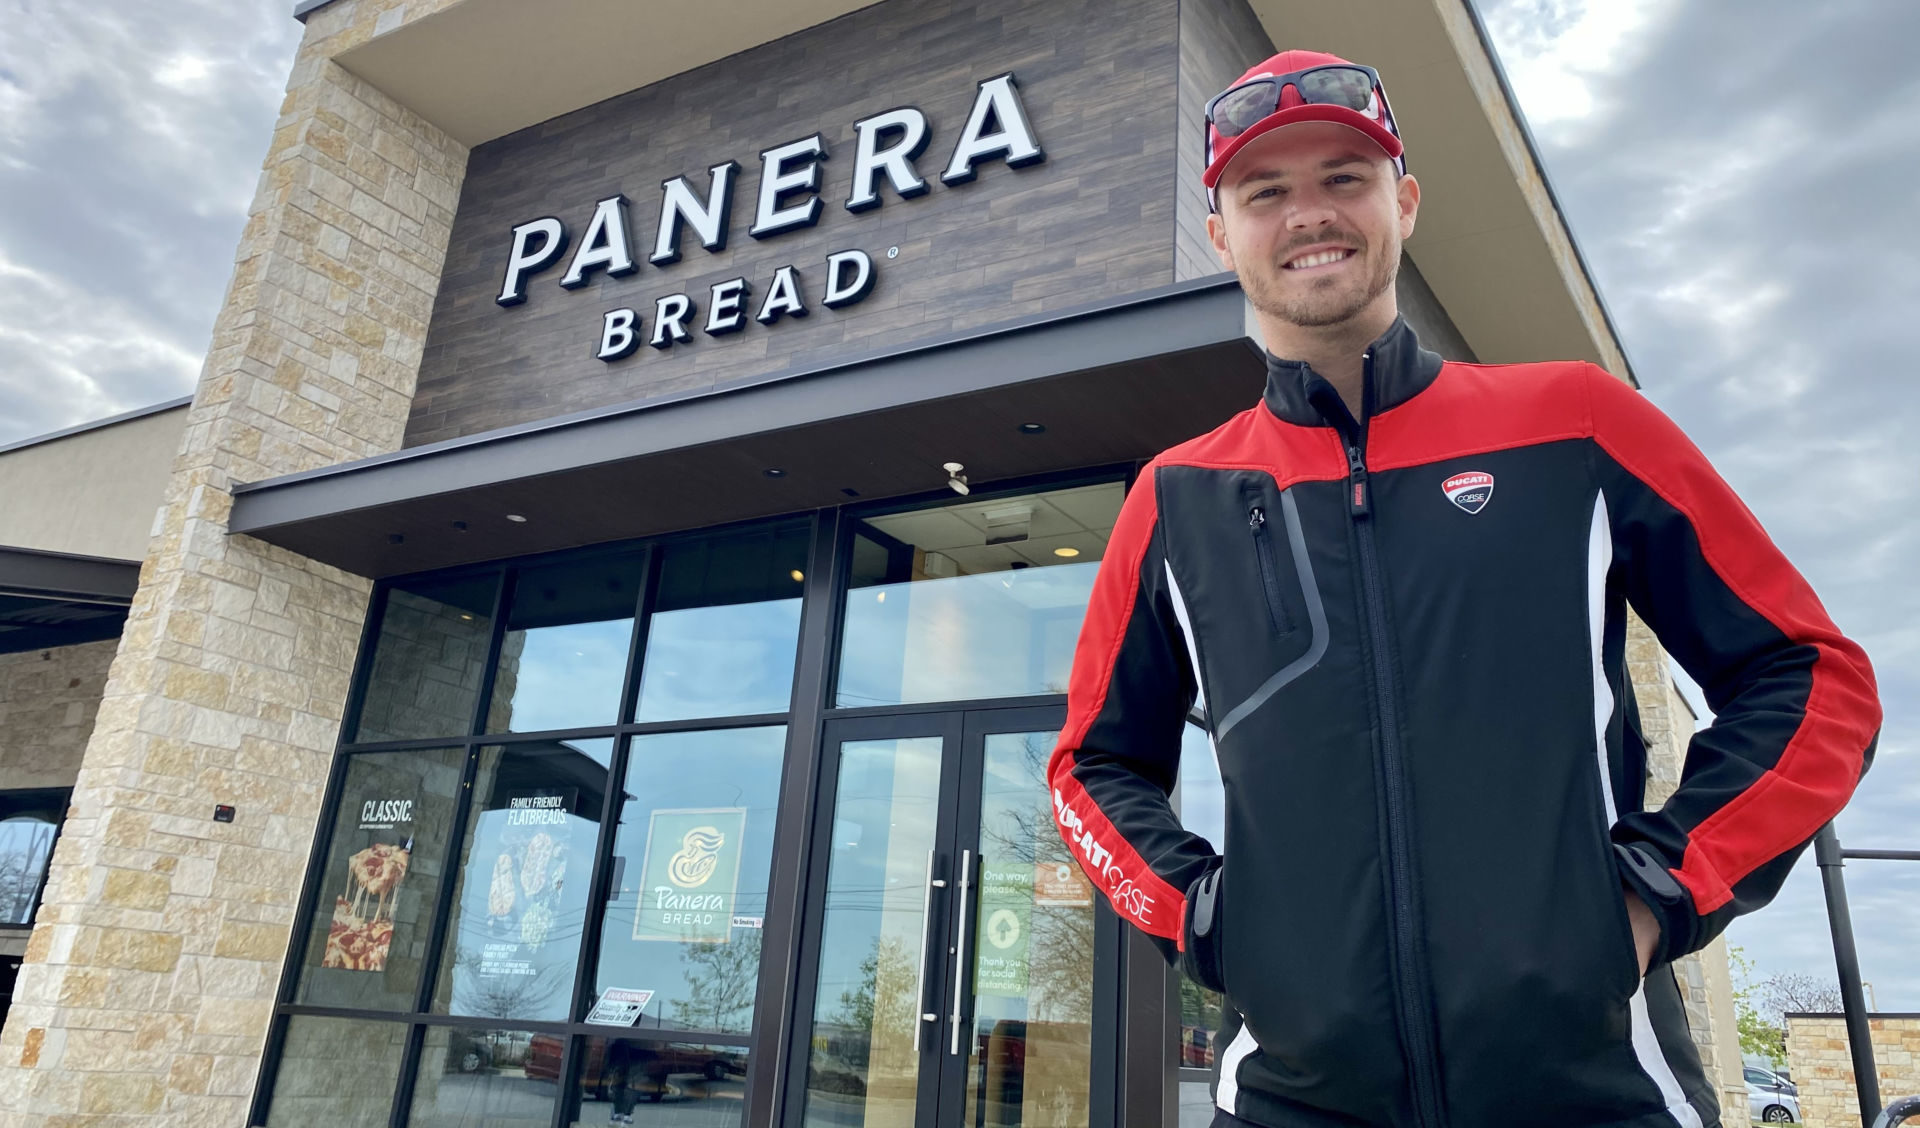 Panera Bread will be the title sponsor of Kyle Wyman and the KWR Ducati Team in 2021. Photo courtesy Panera Bread KWR Ducati.